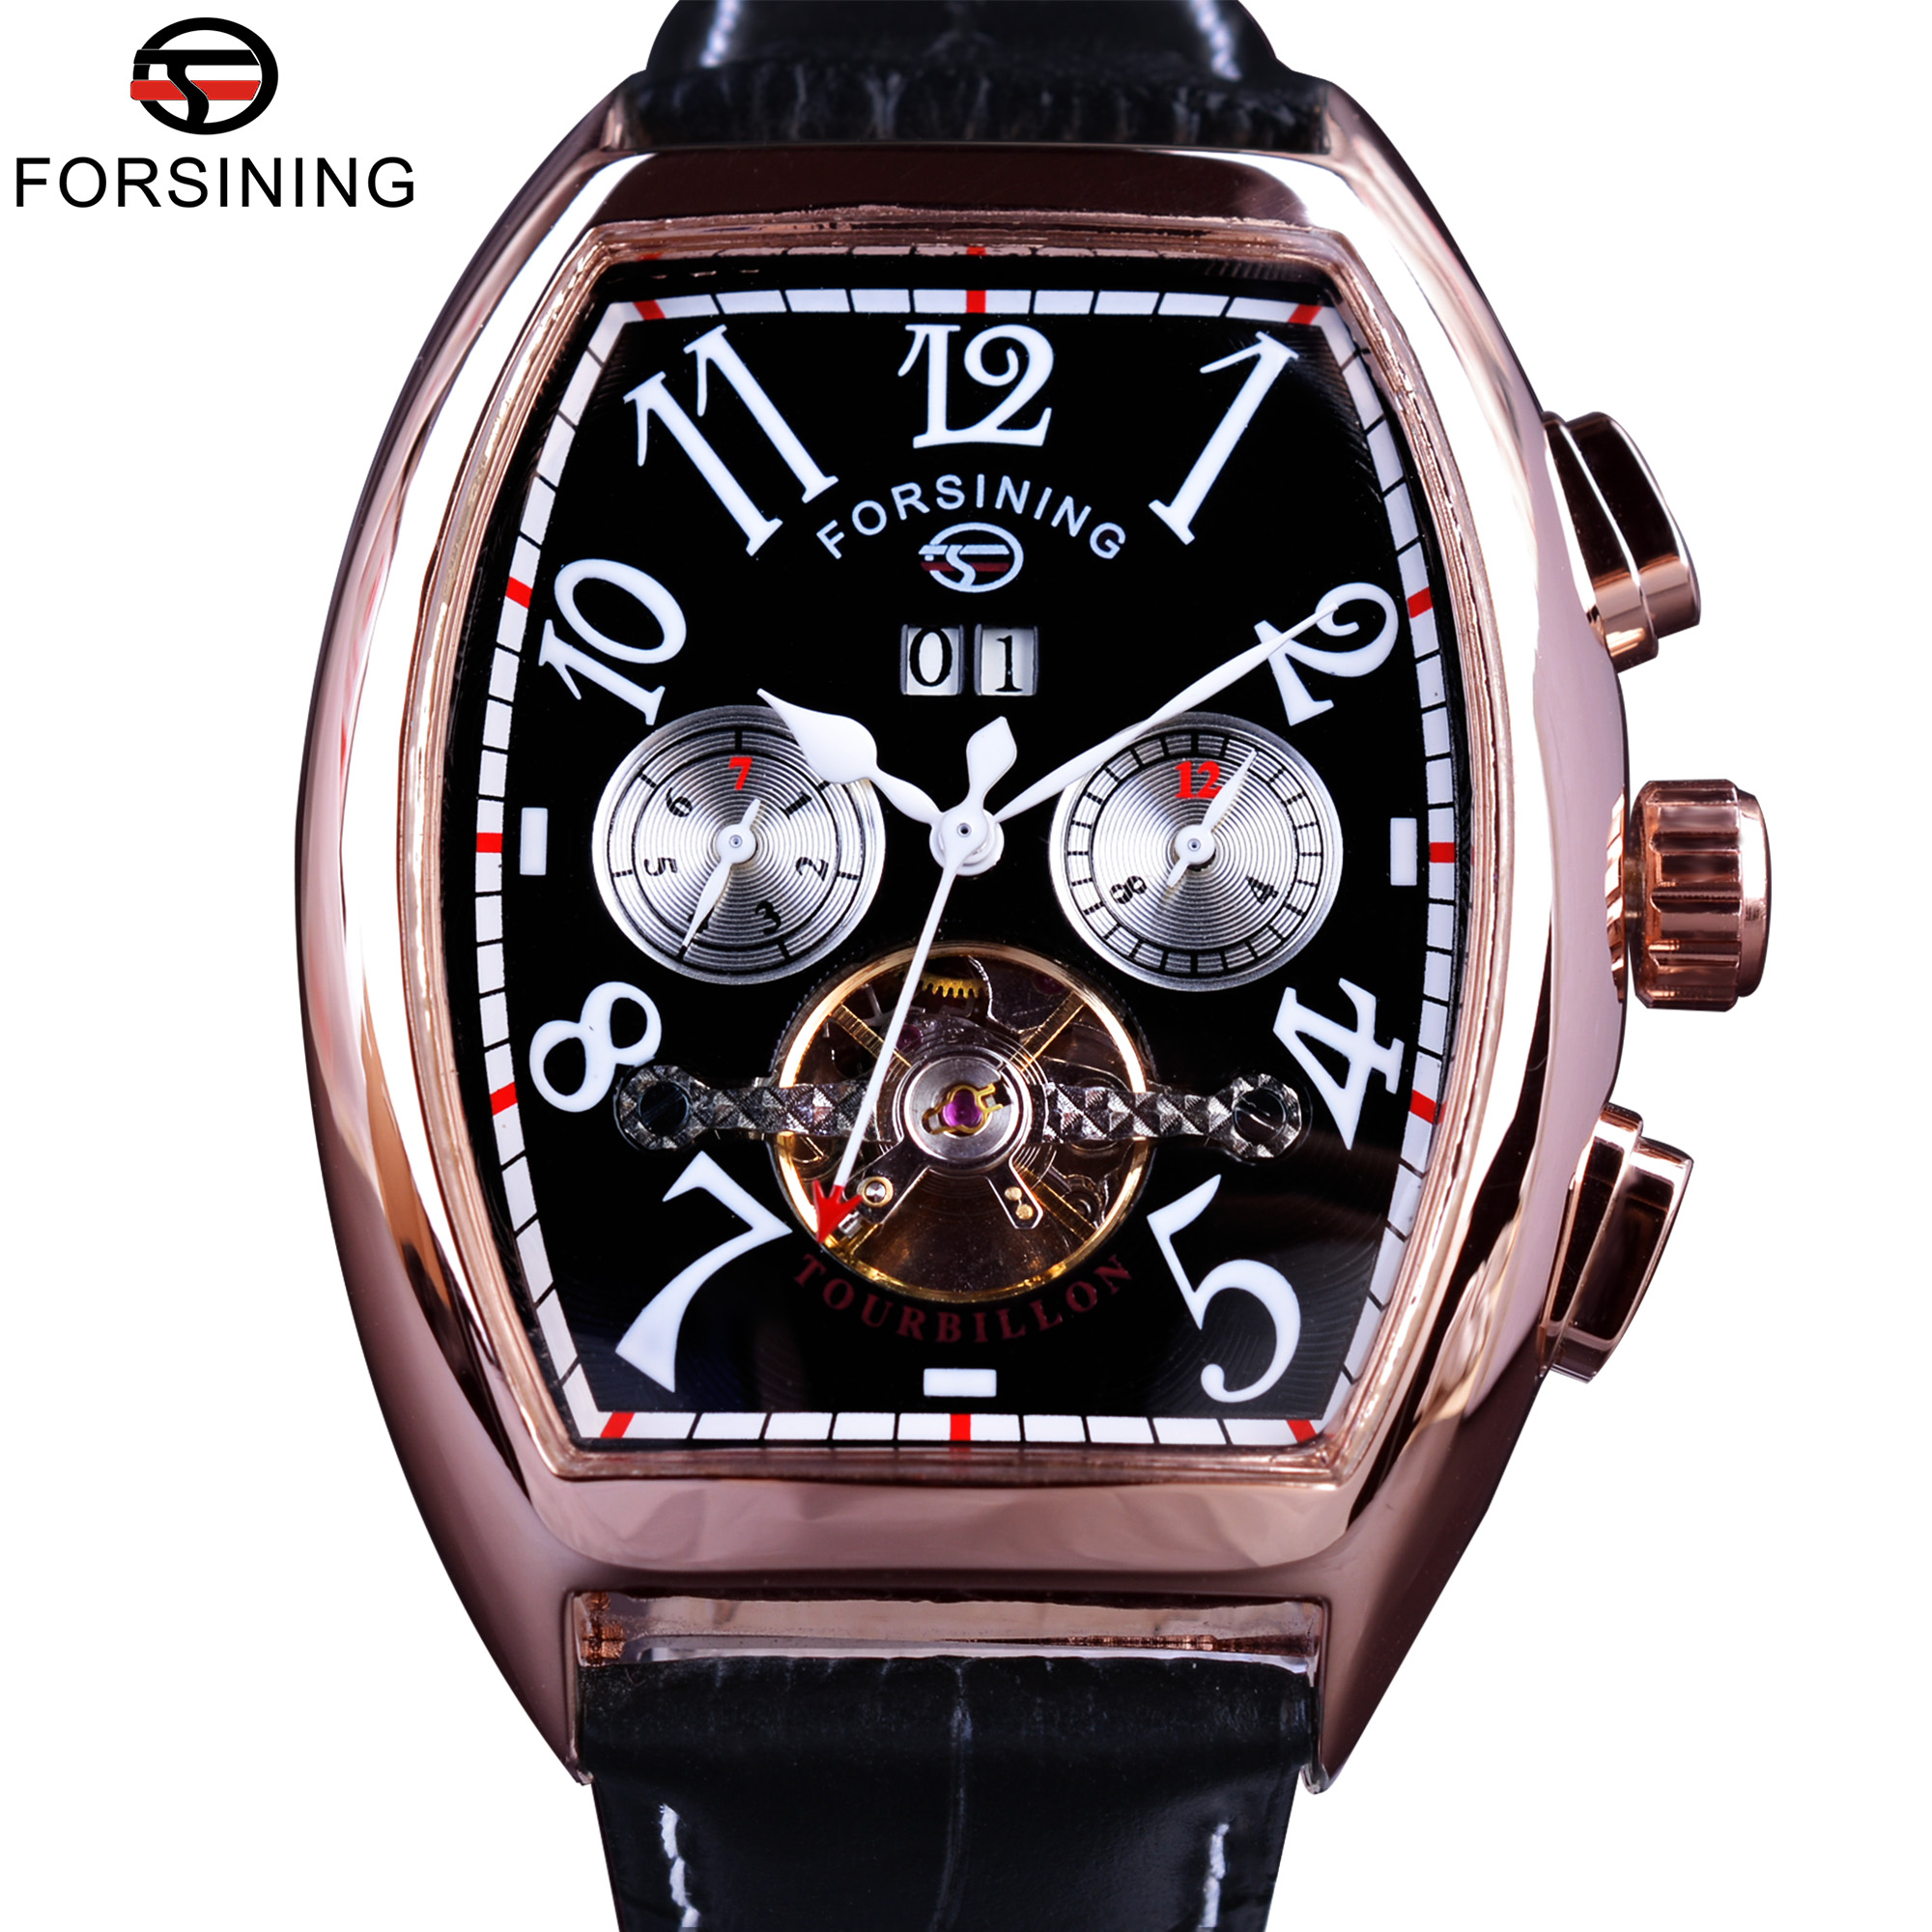 Forsining Date Month Display Rose Golden Case Mens Watches Top Brand Luxury Automatic Watch Clock Men Casual Fashion Clock Watch forsining multifunction tourbillon date day display rose golden watch men luxury brand automatic watch fashion men sport watches